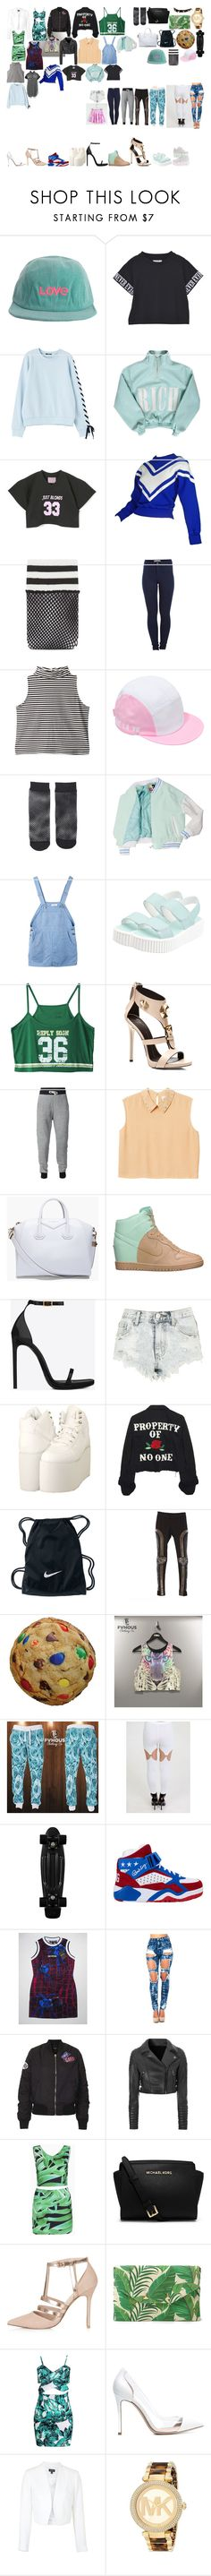 """Packing for Tour"" by royalsinthedark ❤ liked on Polyvore featuring Ashish, Cotton Candy, Free People, Pieces, Larose, Giuseppe Zanotti, Monki, Givenchy, NIKE and Yves Saint Laurent"